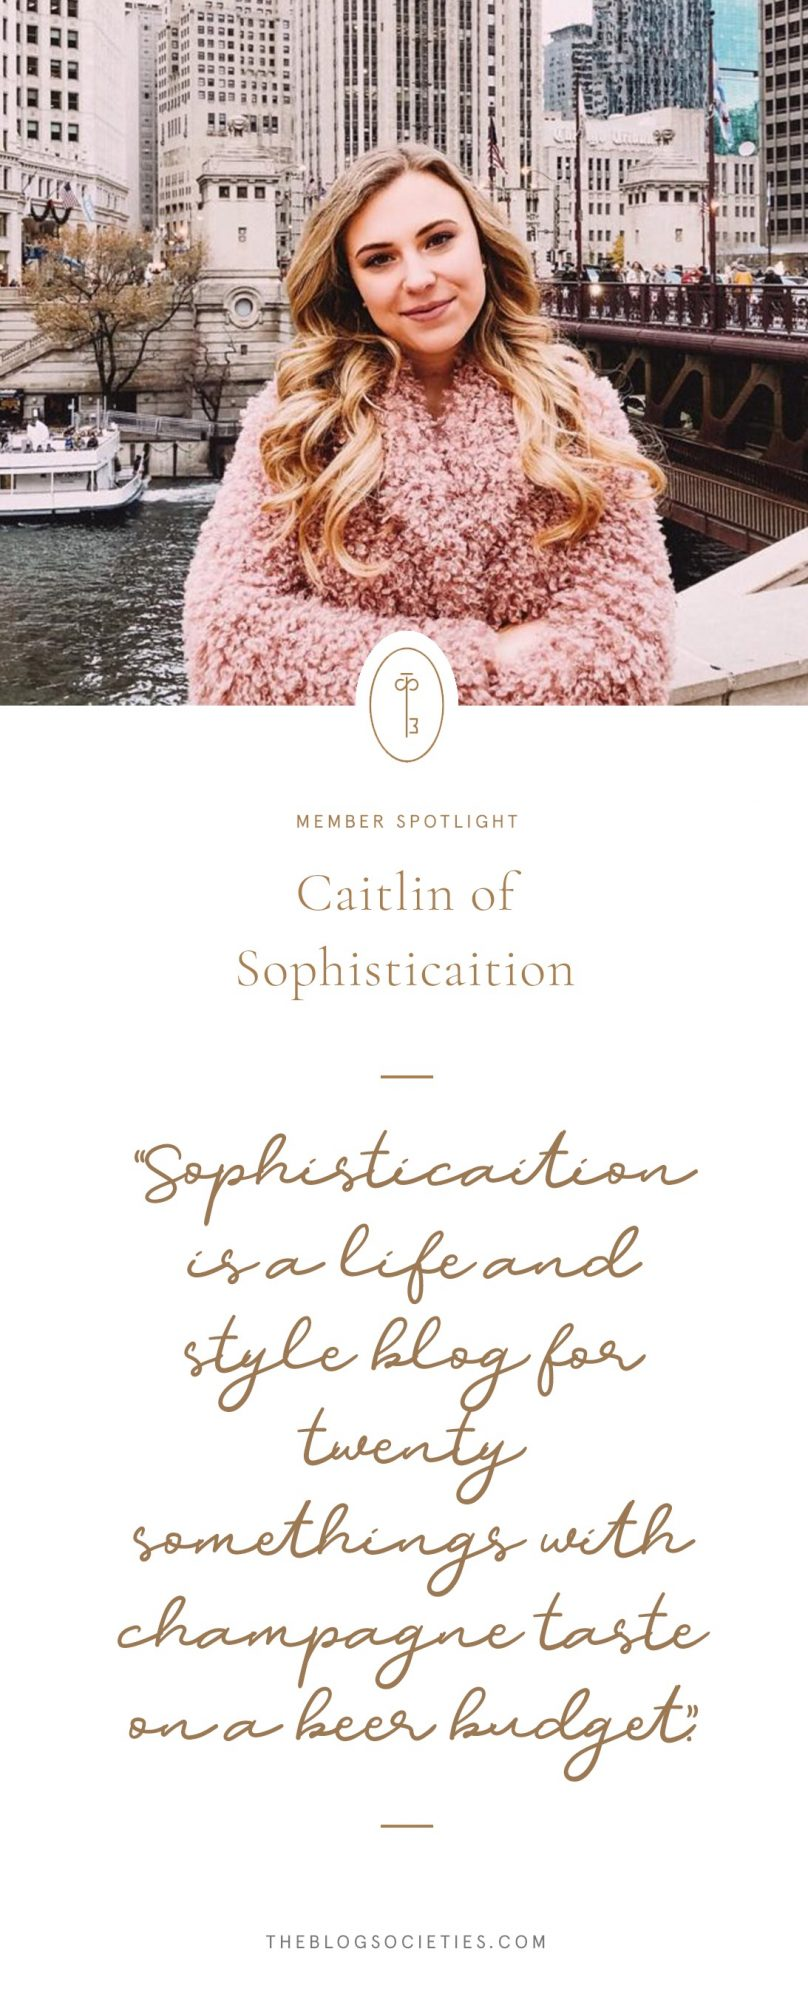 Caitlin of Sophisticaition, Chicago Blogger